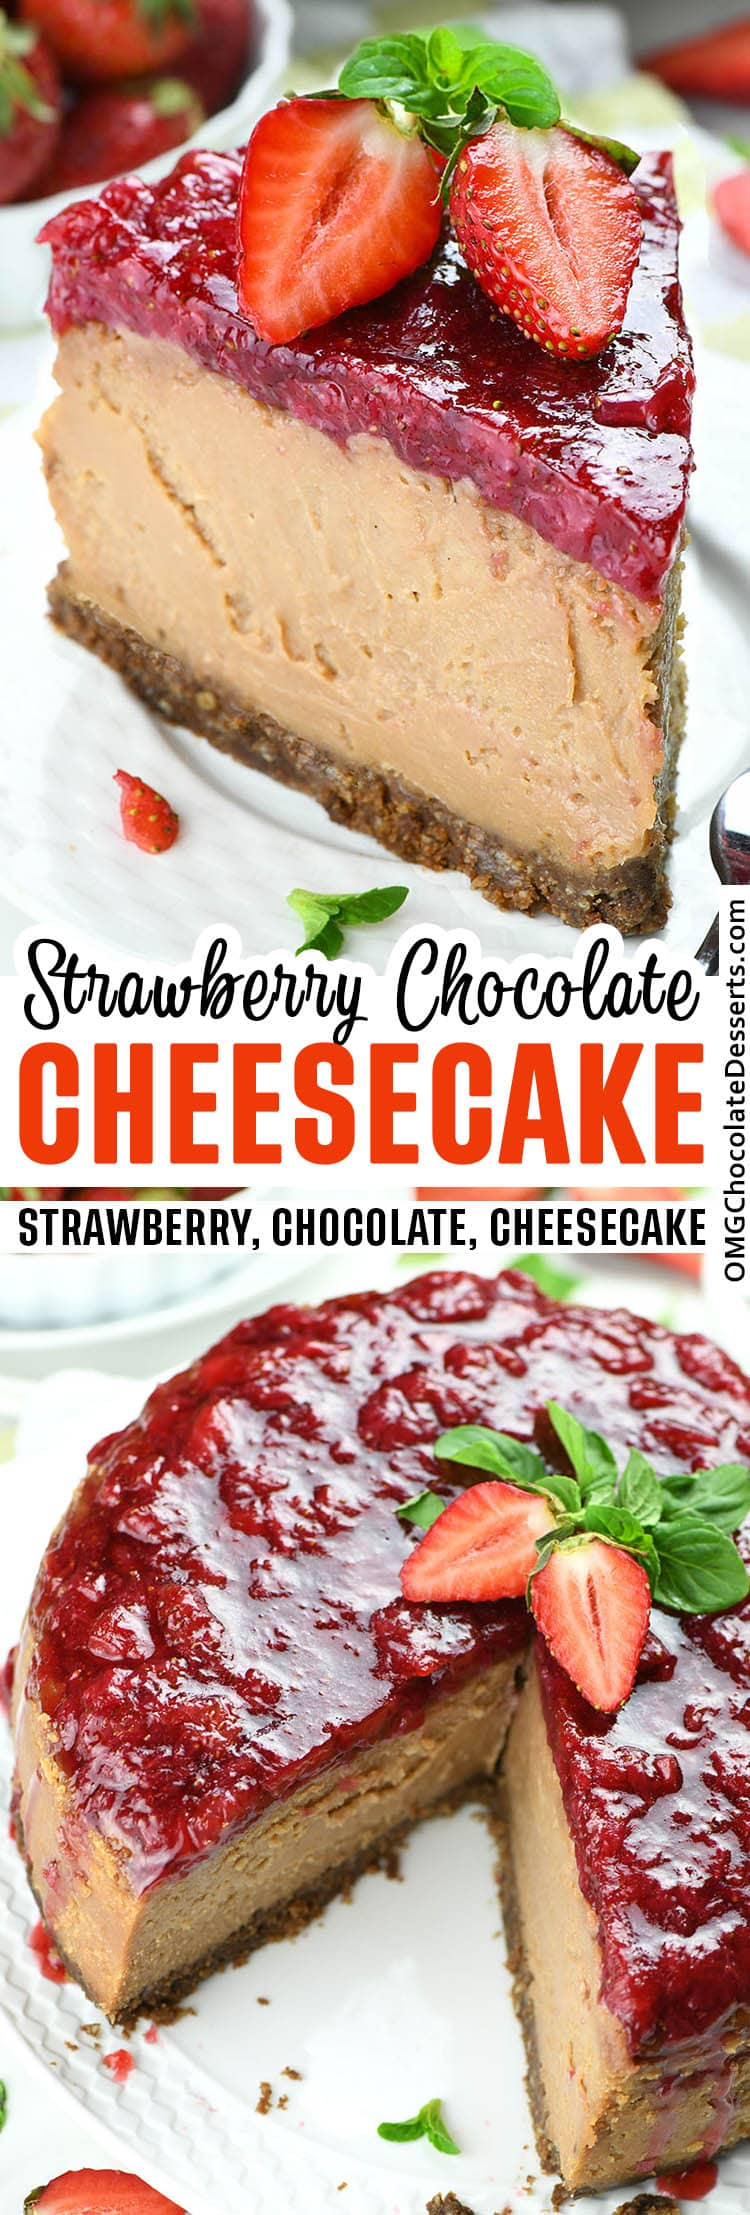 Two different images of Strawberry Chocolate Cheesecake with title between.